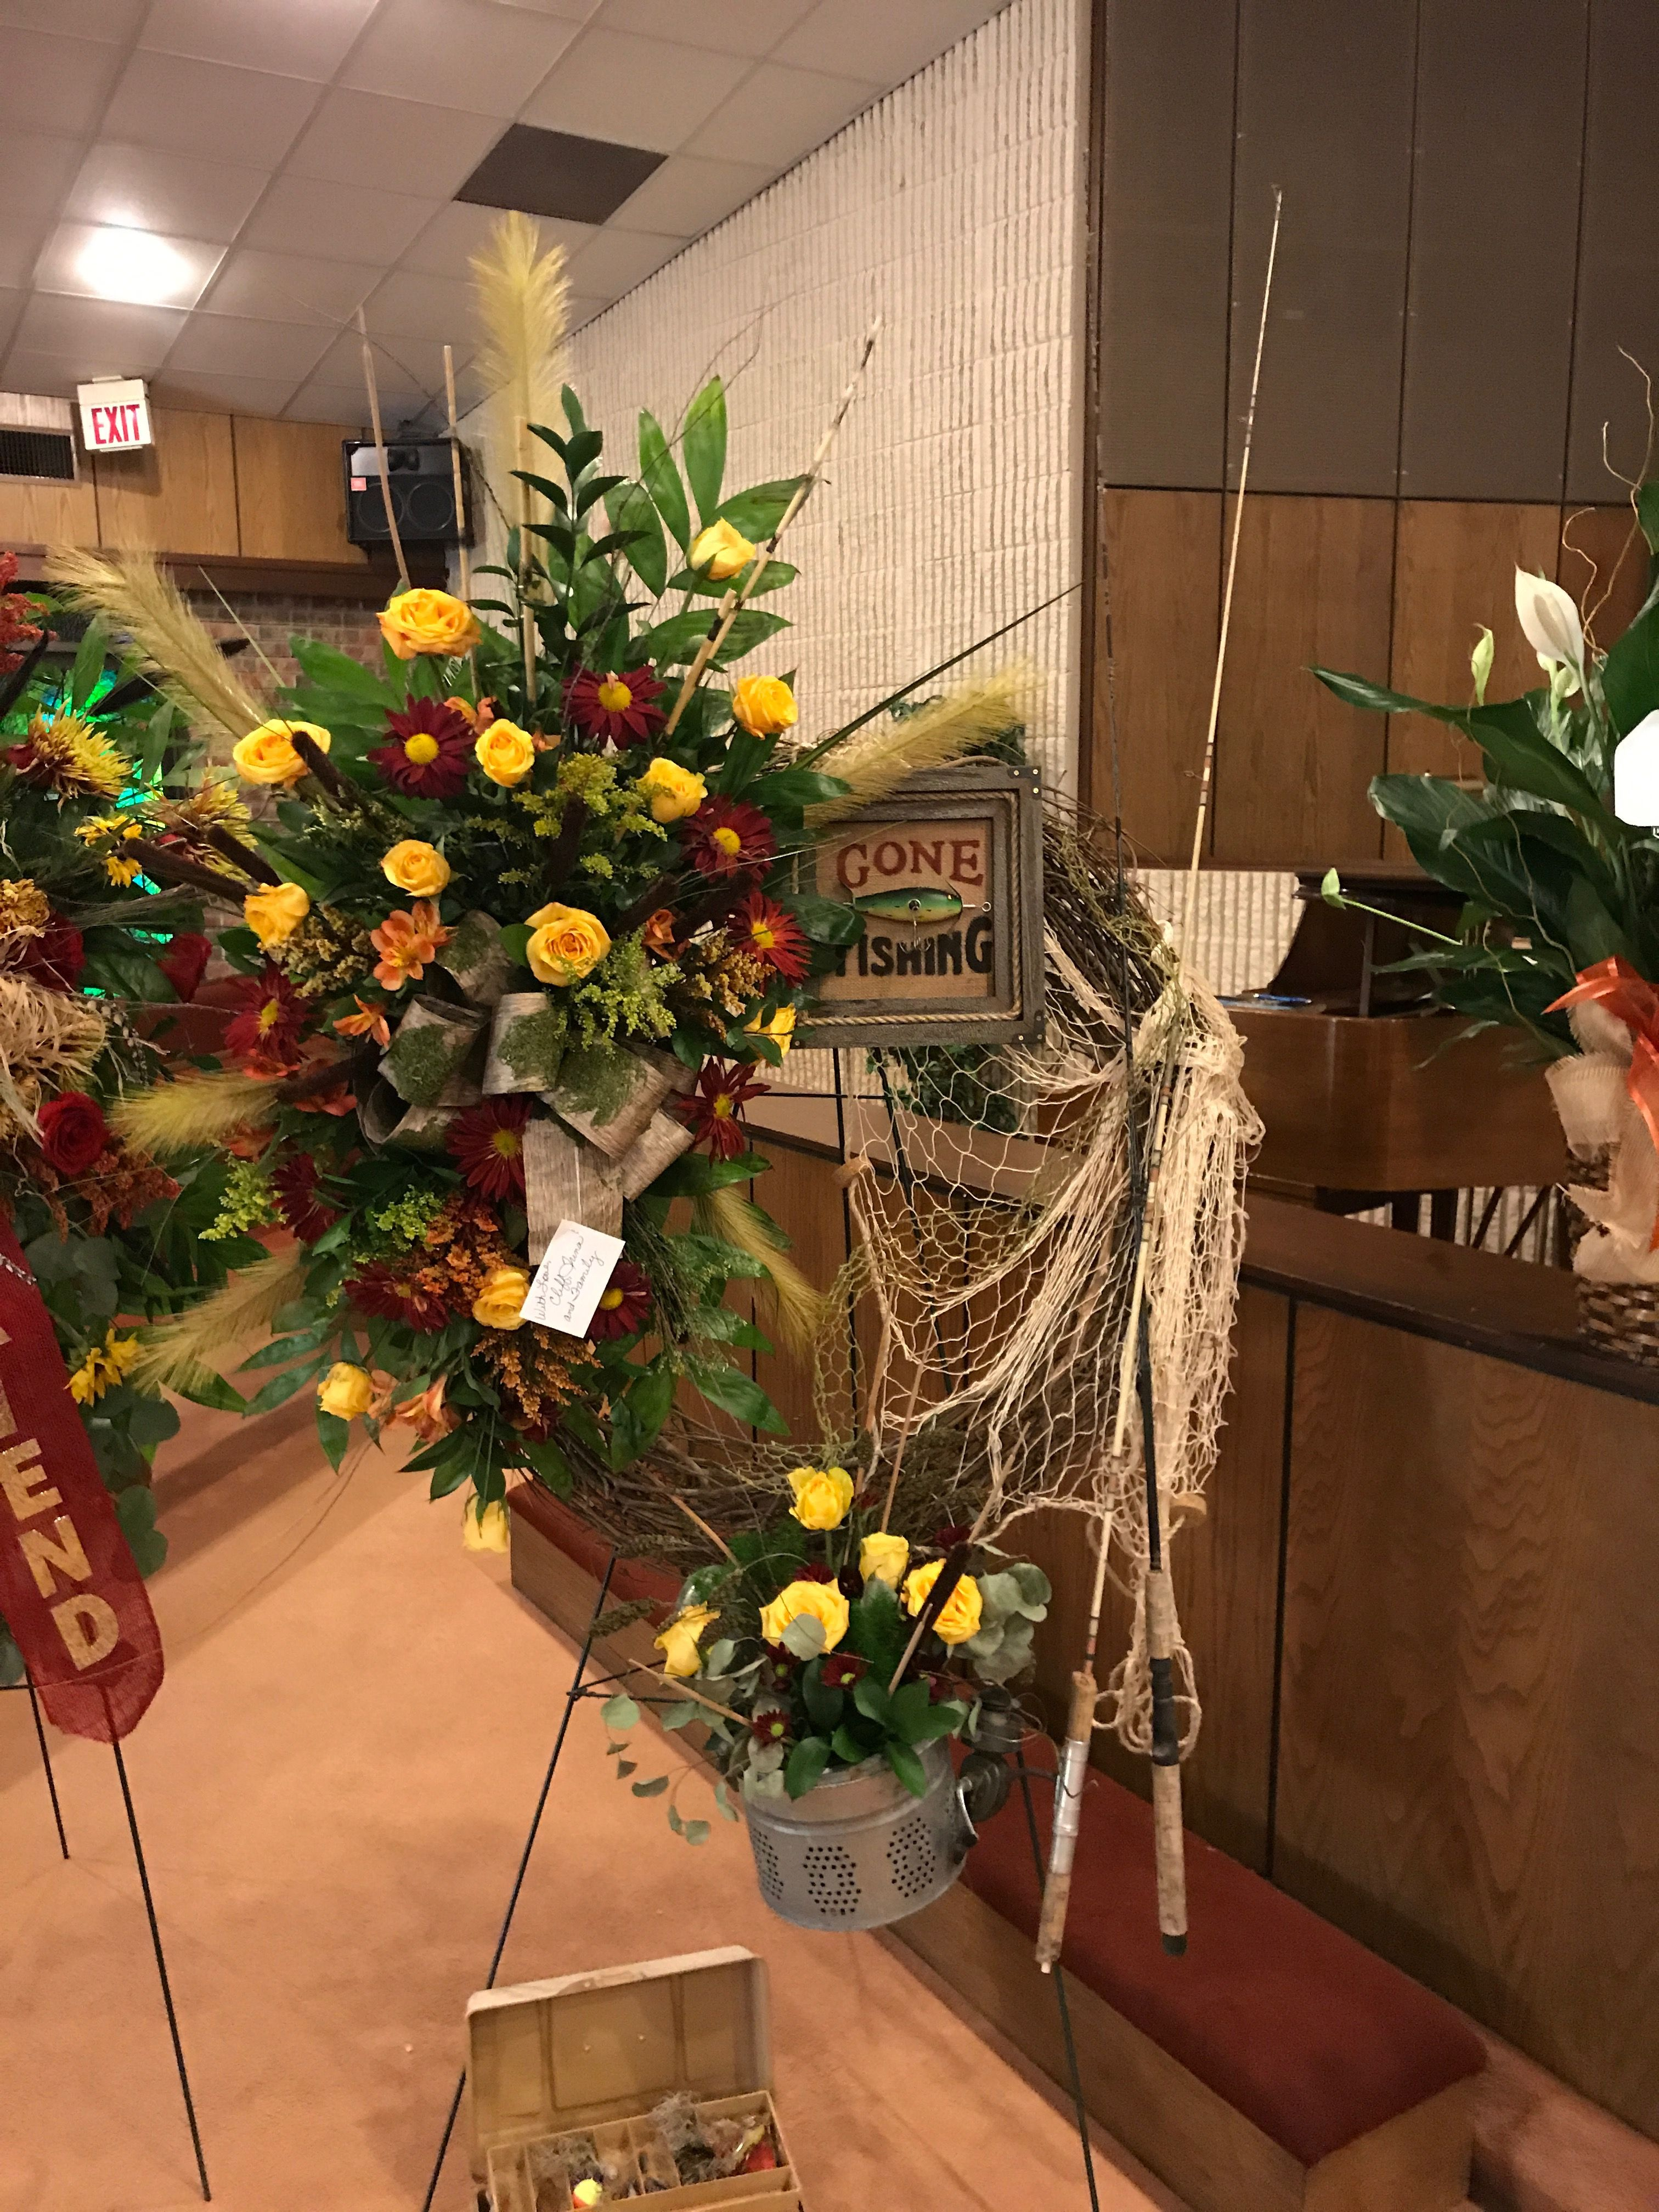 Pin by t on flower shop pinterest funeral funeral flowers and pin by t on flower shop pinterest funeral funeral flowers and funeral ideas izmirmasajfo